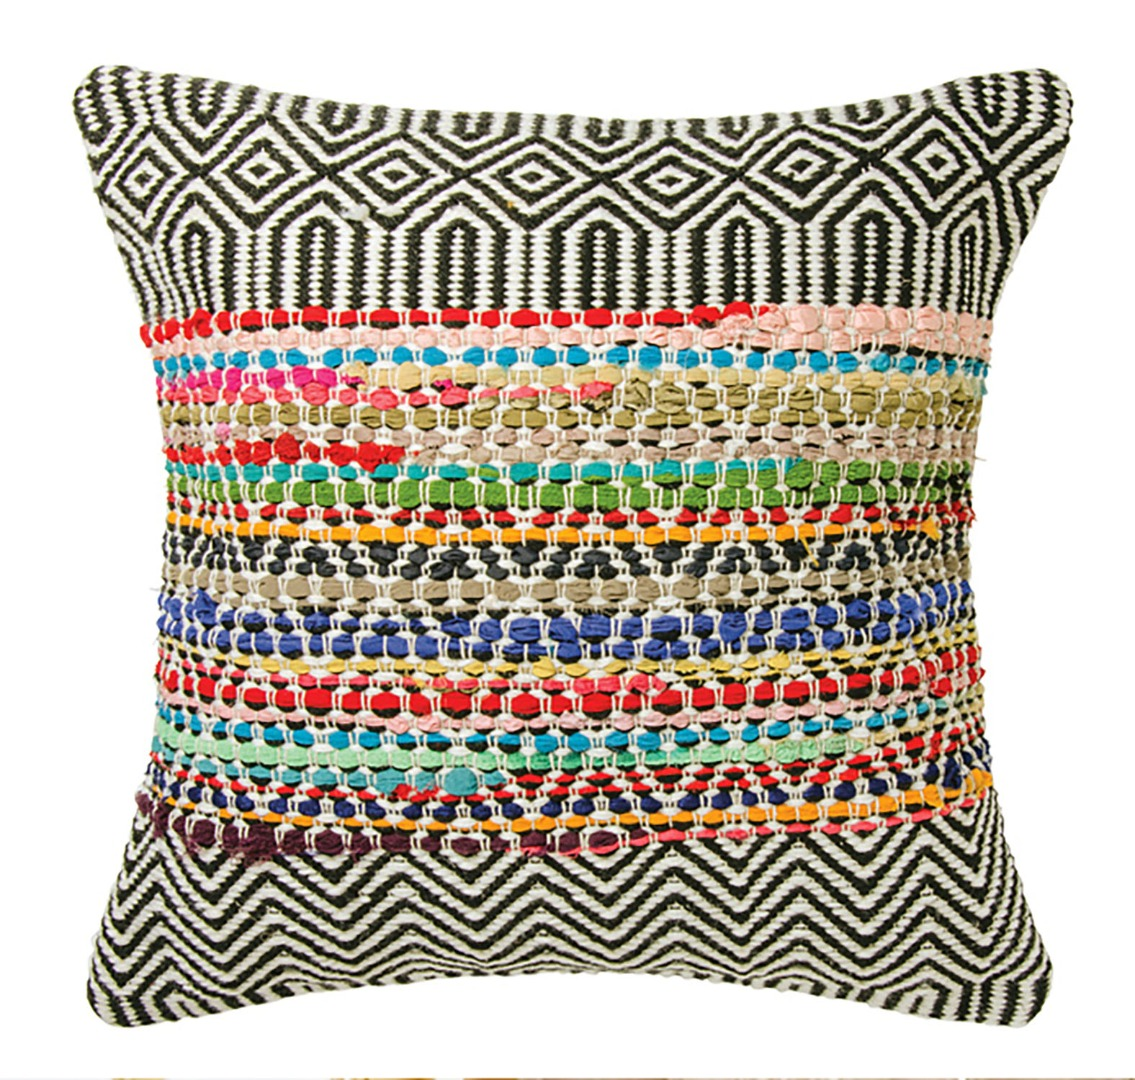 Fair Trade Colourful Handloomed Recycled Indoor/Outdoor PET Cushion in 2 sizes